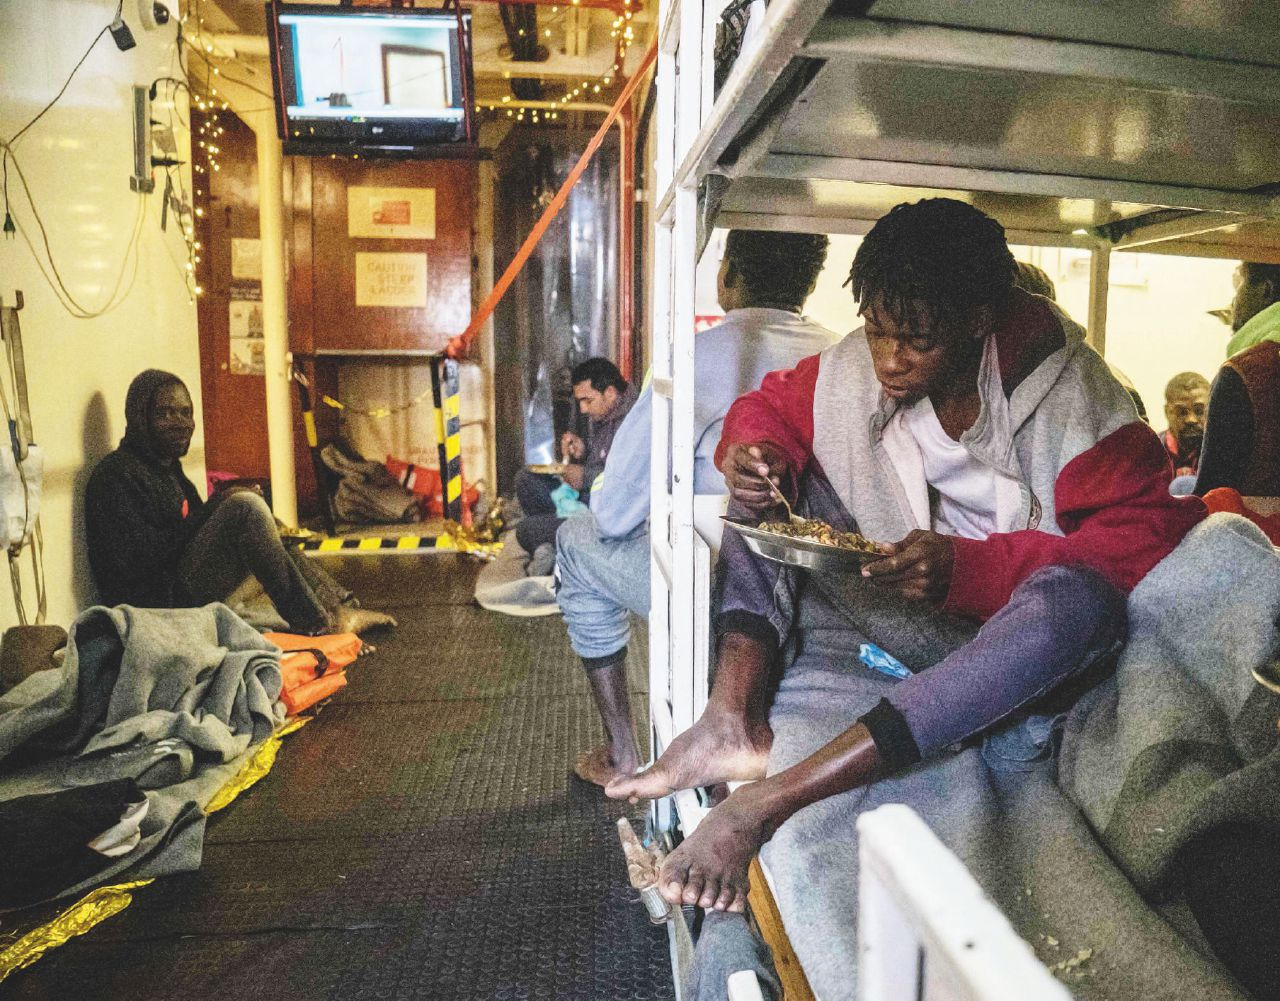 Rescued migrants eat a hot meal onboard the Dutch-flagged rescue vessel Sea Watch 3 on January 5, 2019, sailing the Mediterranean about 3 nautical miles off Malta's coast, a day after Mediterranea and Sea-Watch launched two boats to deliver supplies, including fresh water. - Thirty-two migrants, including children and teenagers rescued off Malta by a Sea-Watch rescue boat on December 22, 2018 remain at sea after being denied entry to European ports. The boat was given permission by Malta on January 3 to shelter off its coast due to a storm and fierce winds, but not to land. (Photo by FEDERICO SCOPPA / AFP)